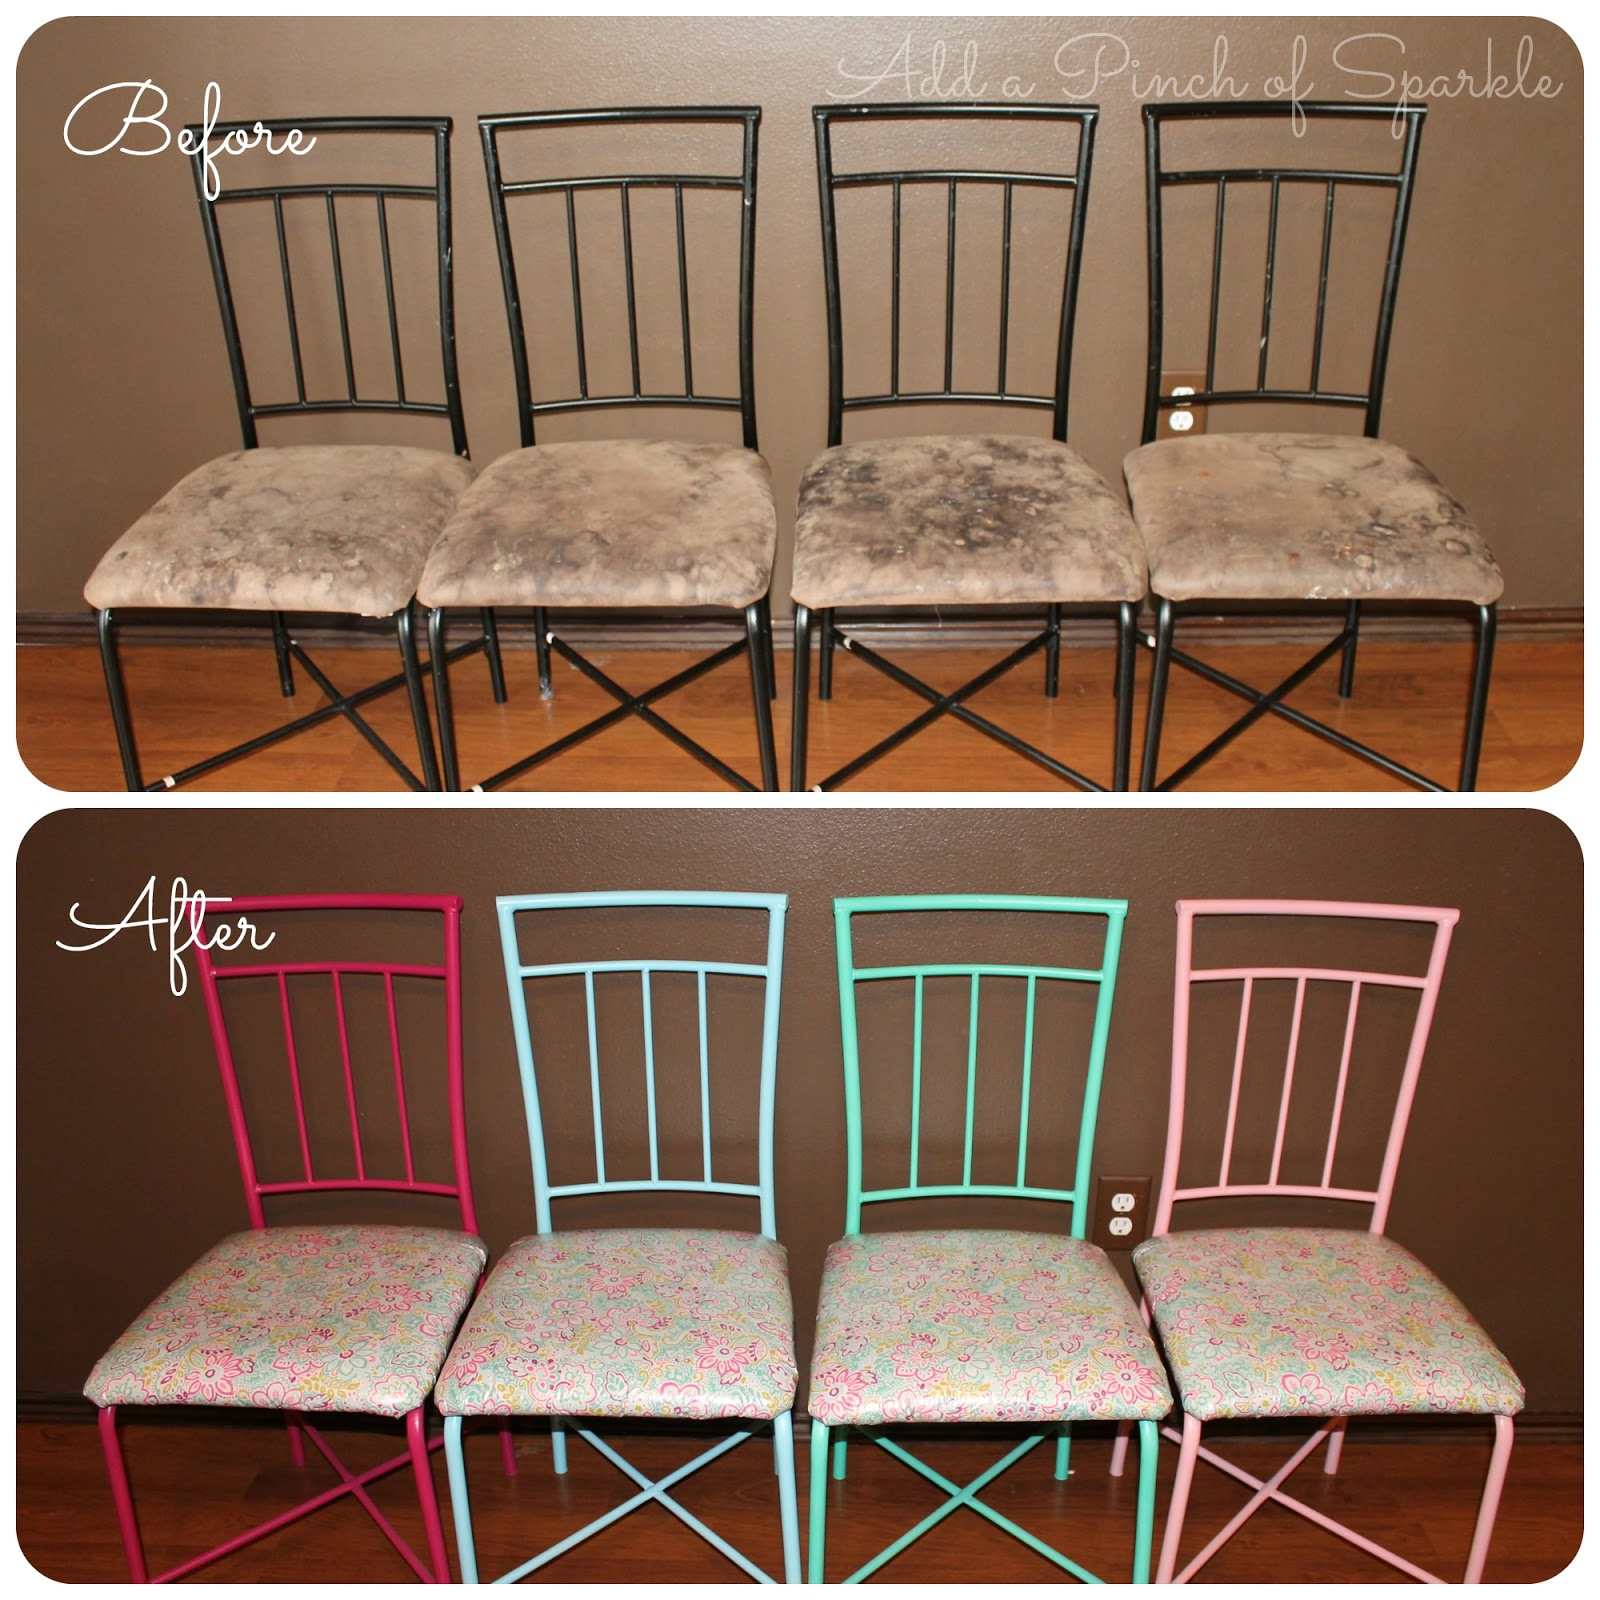 Astonishing Add A Pinch Of Sparkle Diy Kid Friendly Kitchen Chair Makeover Ibusinesslaw Wood Chair Design Ideas Ibusinesslaworg